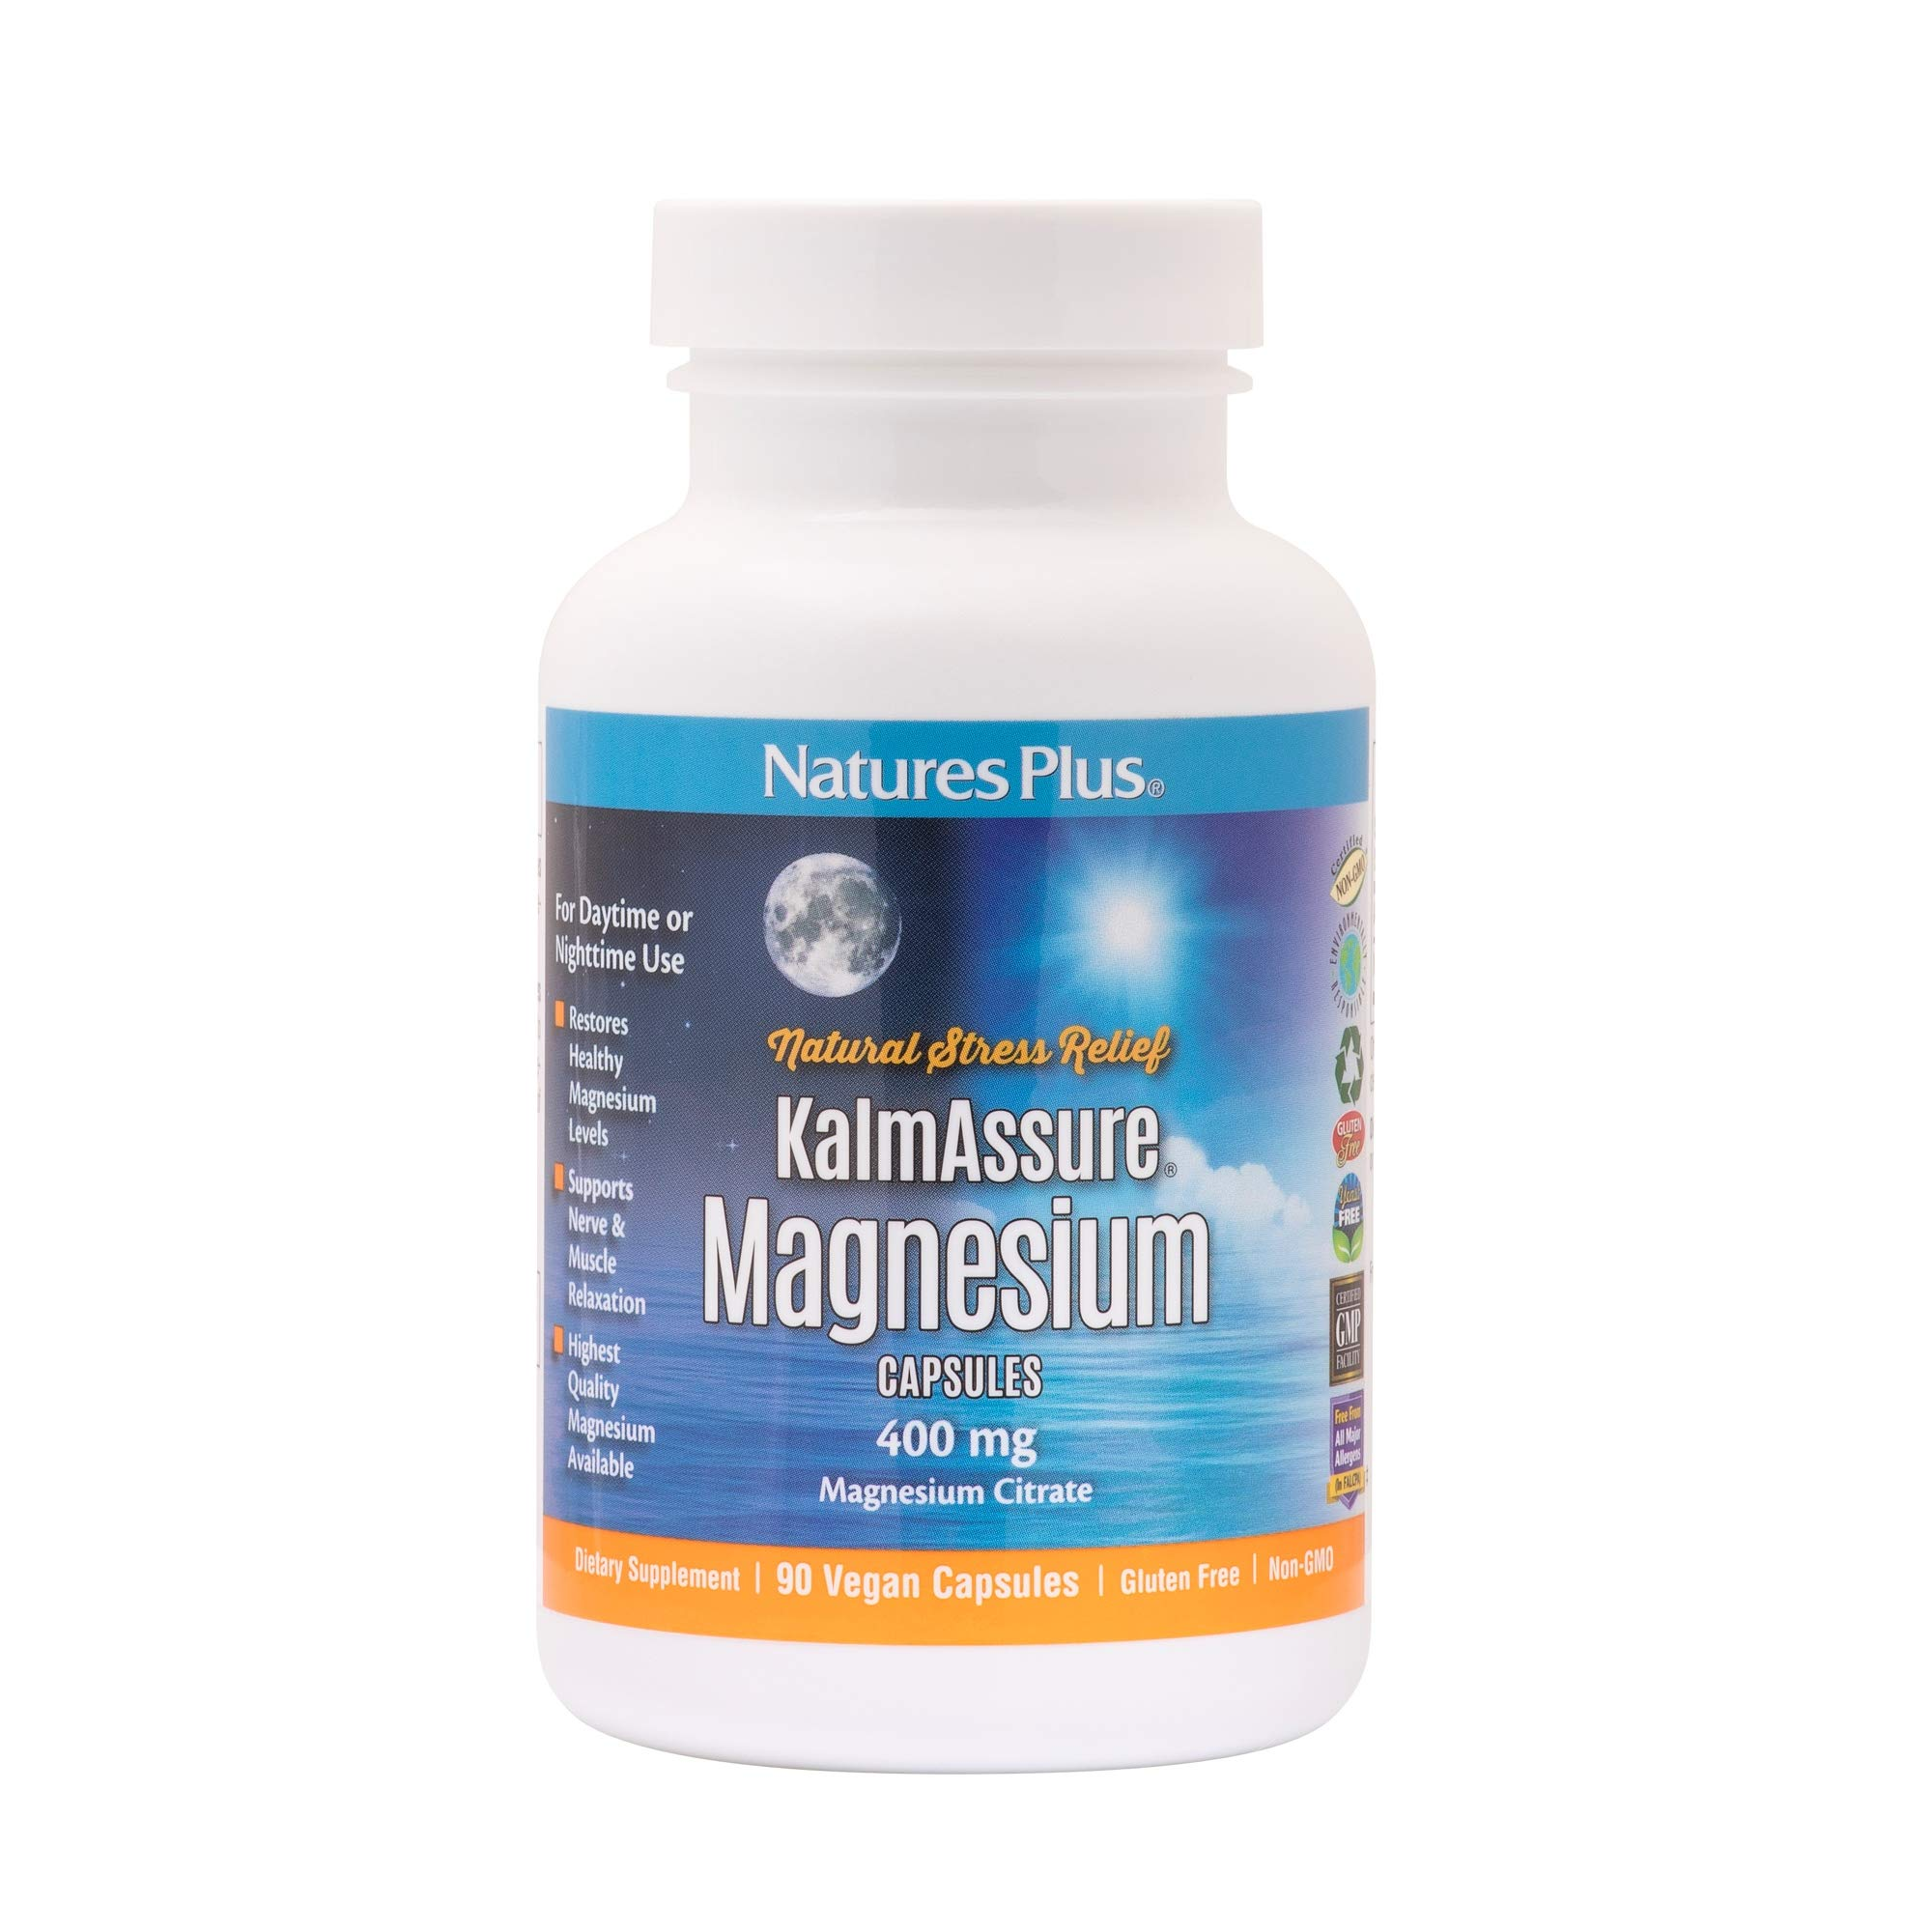 NaturesPlus Kalmassure Magnesium - 400 mg, 90 Vegan Capsules - Natural Stress Relief Supplement, Supports Nerve and Muscle Relaxation - Vegetarian, Gluten-Free - 30 Servings